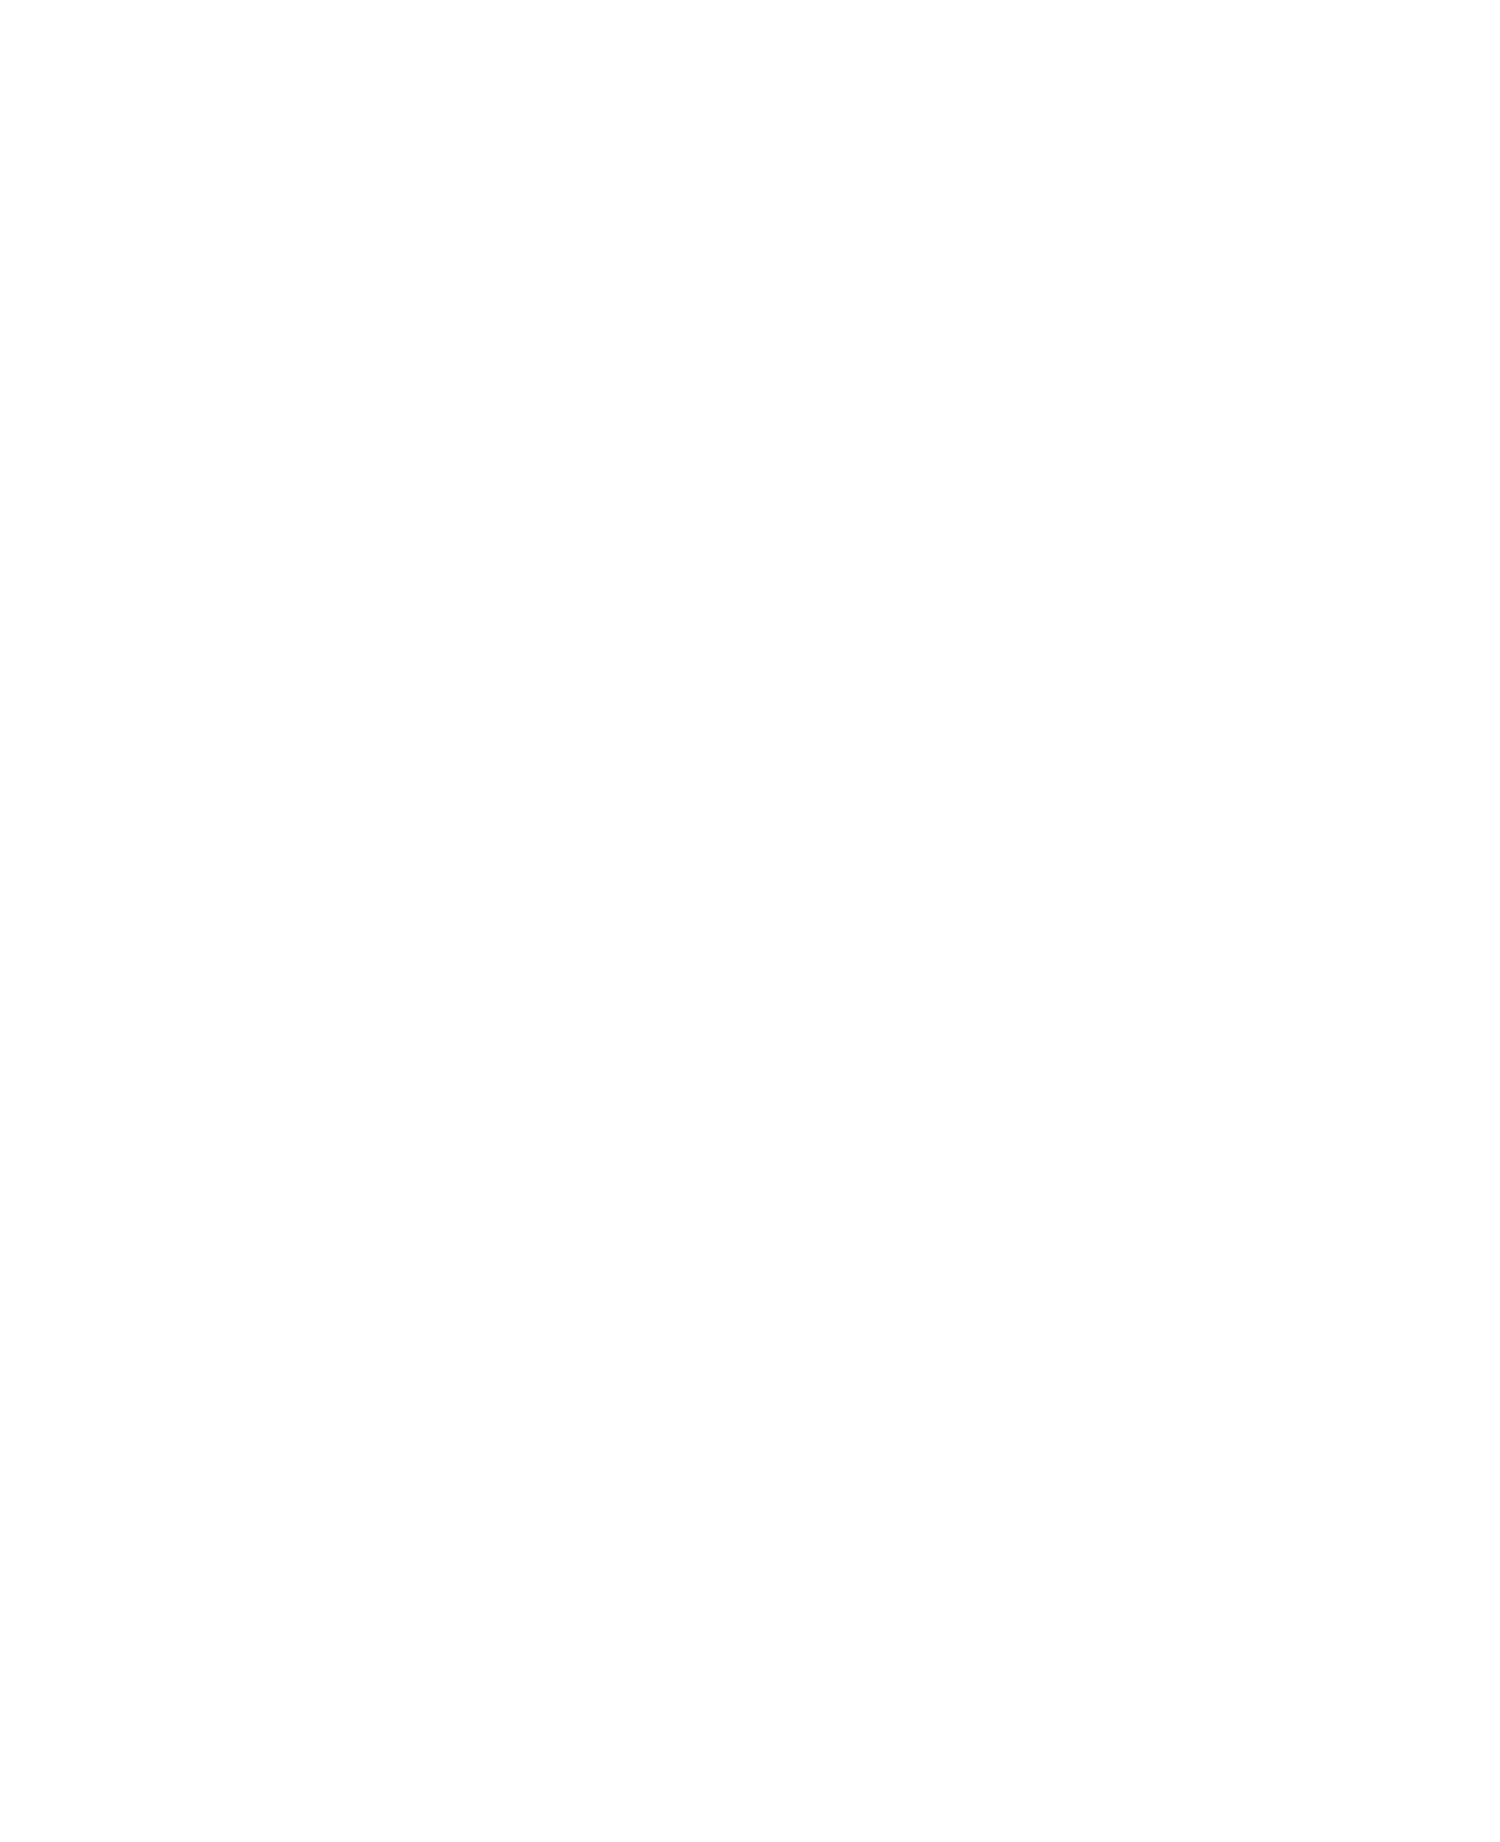 Geelong Revival Fellowship